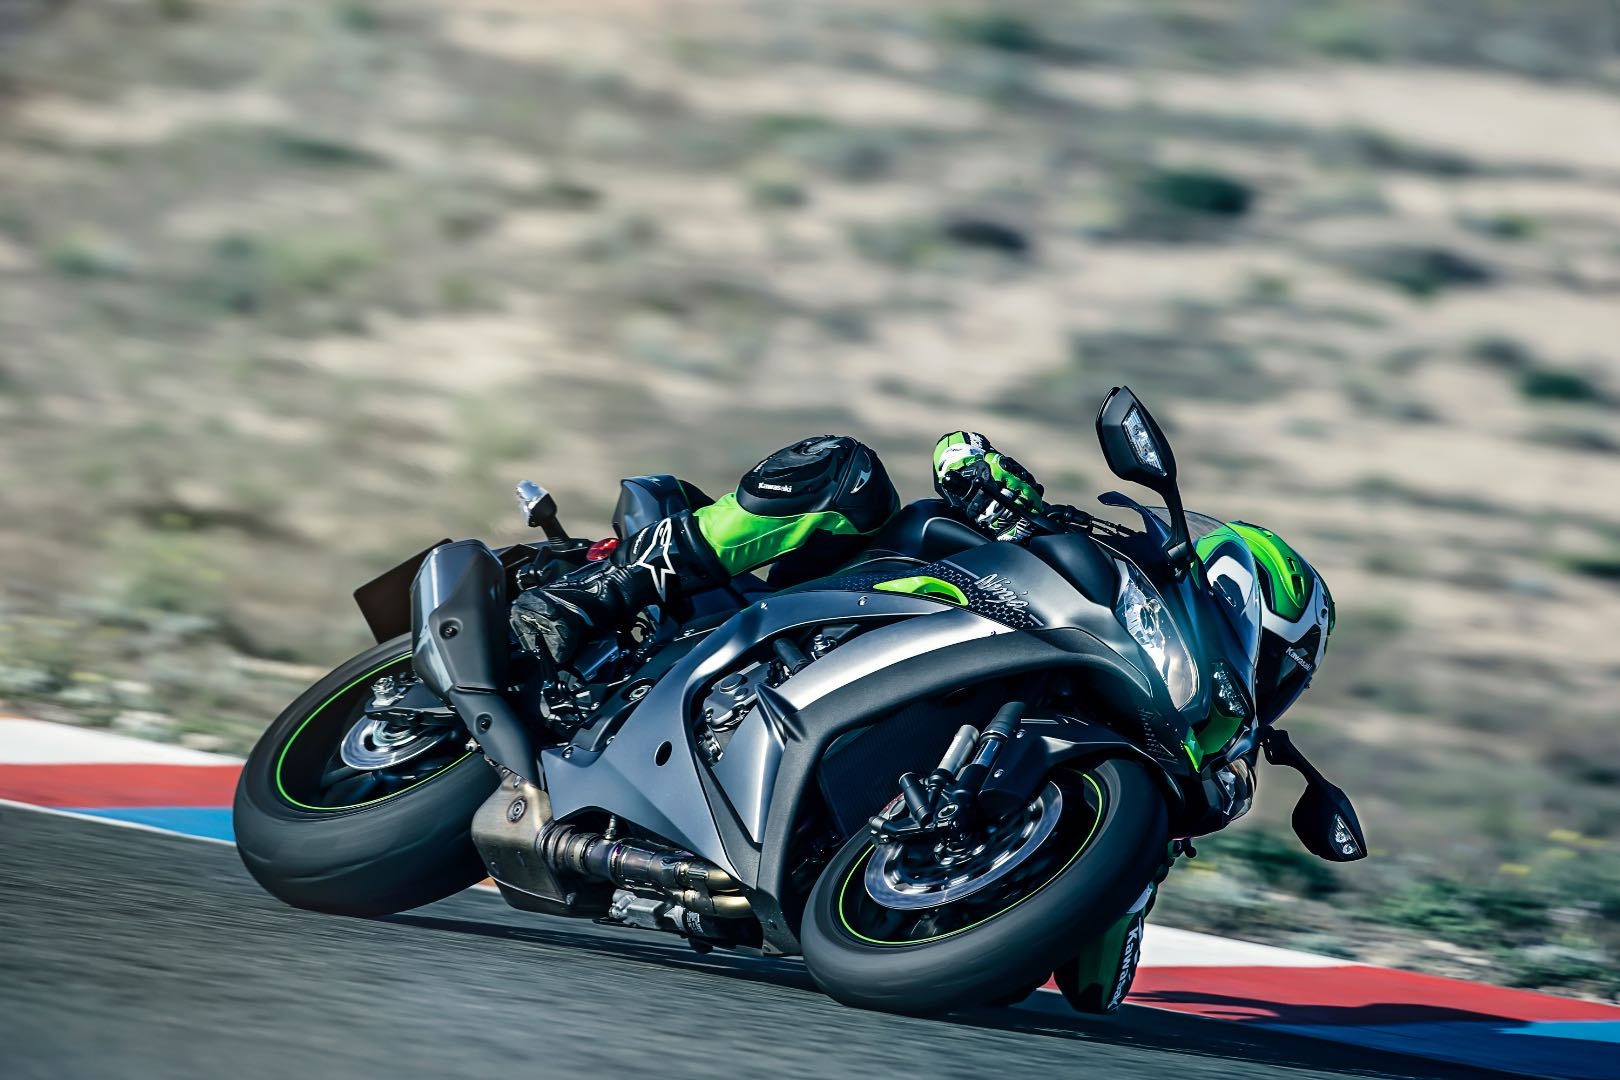 Kawasaki kick-starts 2018 with third new variant of the Ninja ZX-10R